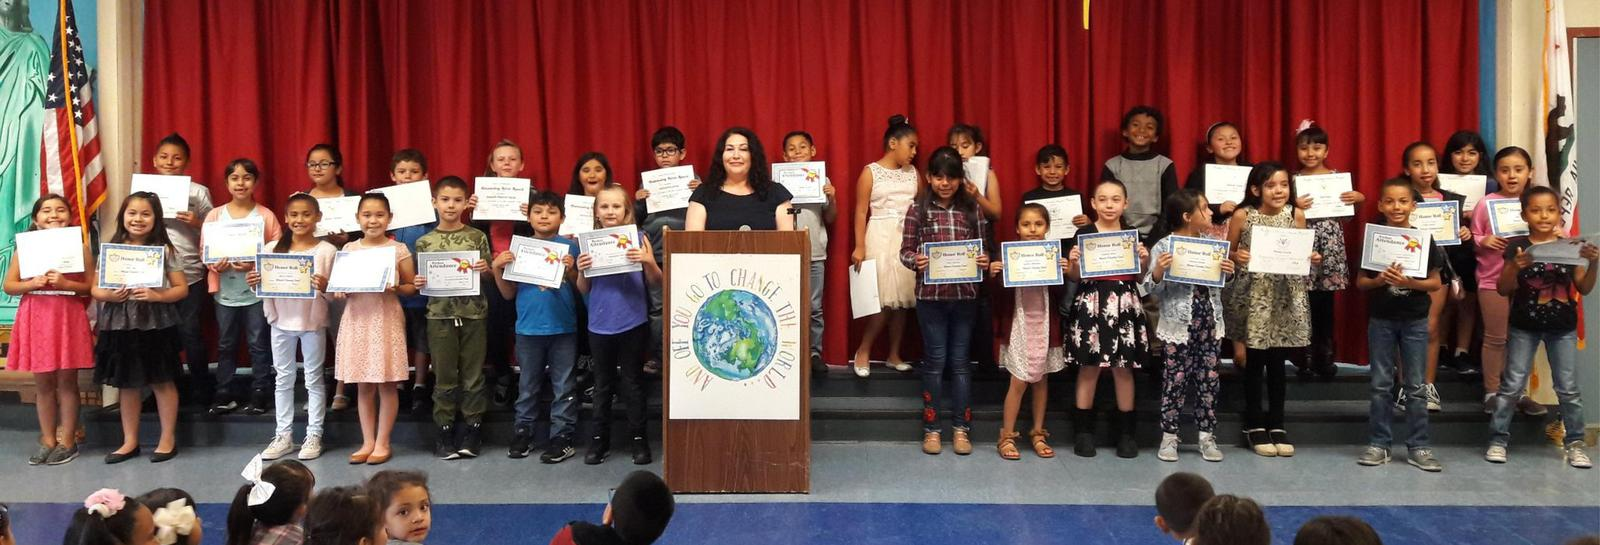 Westmont honor roll students